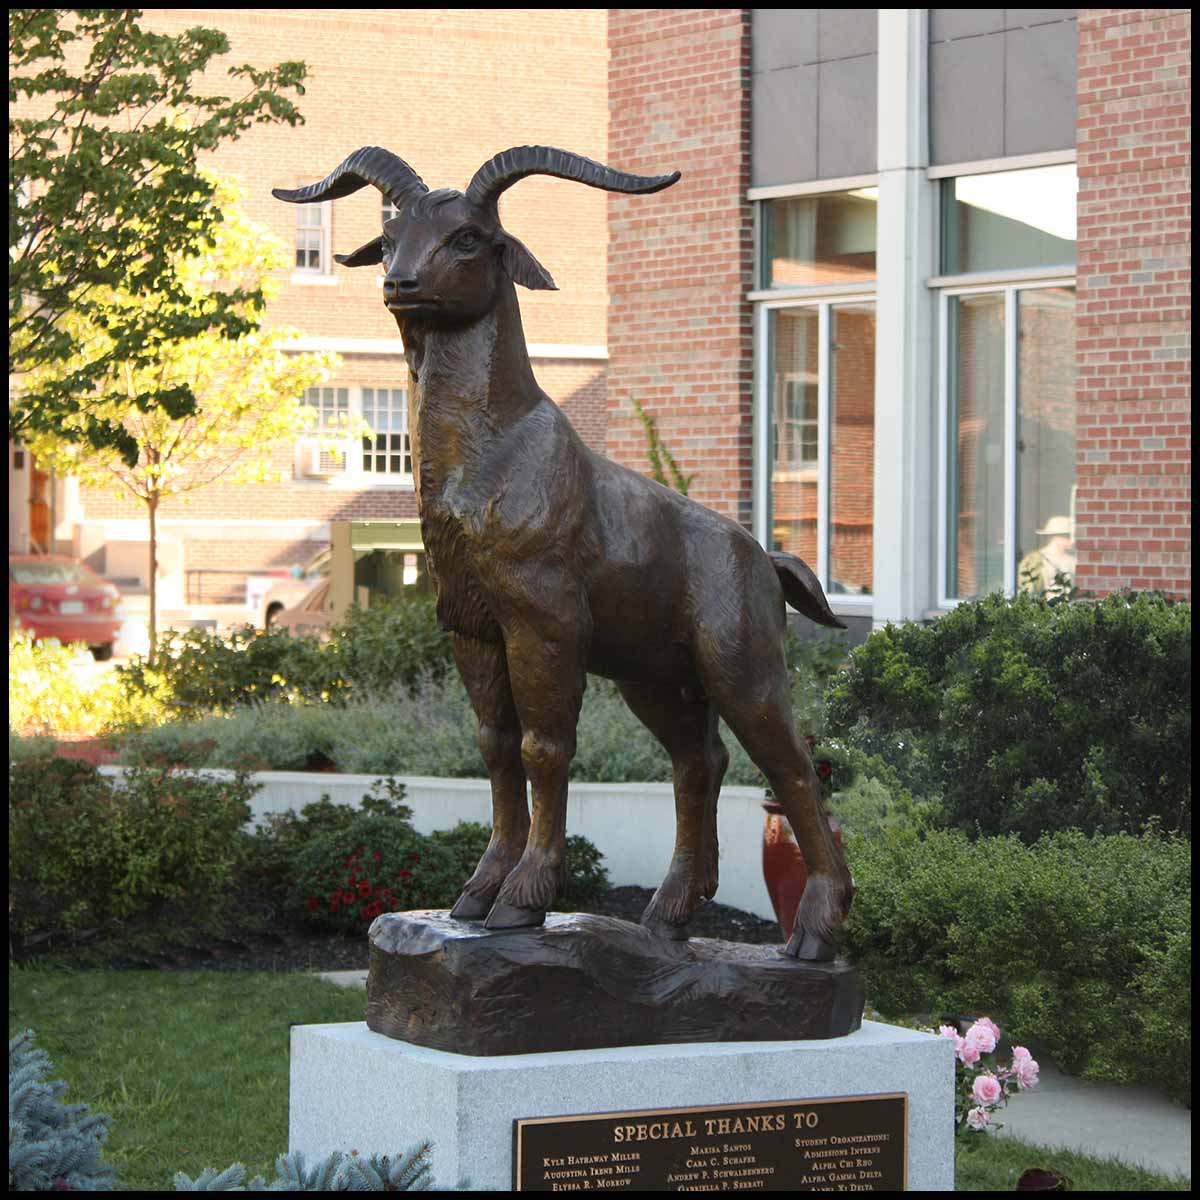 photo of bronze sculpture of goat standing on sculpted incline on granite base surrounded by greenery and brick buildings